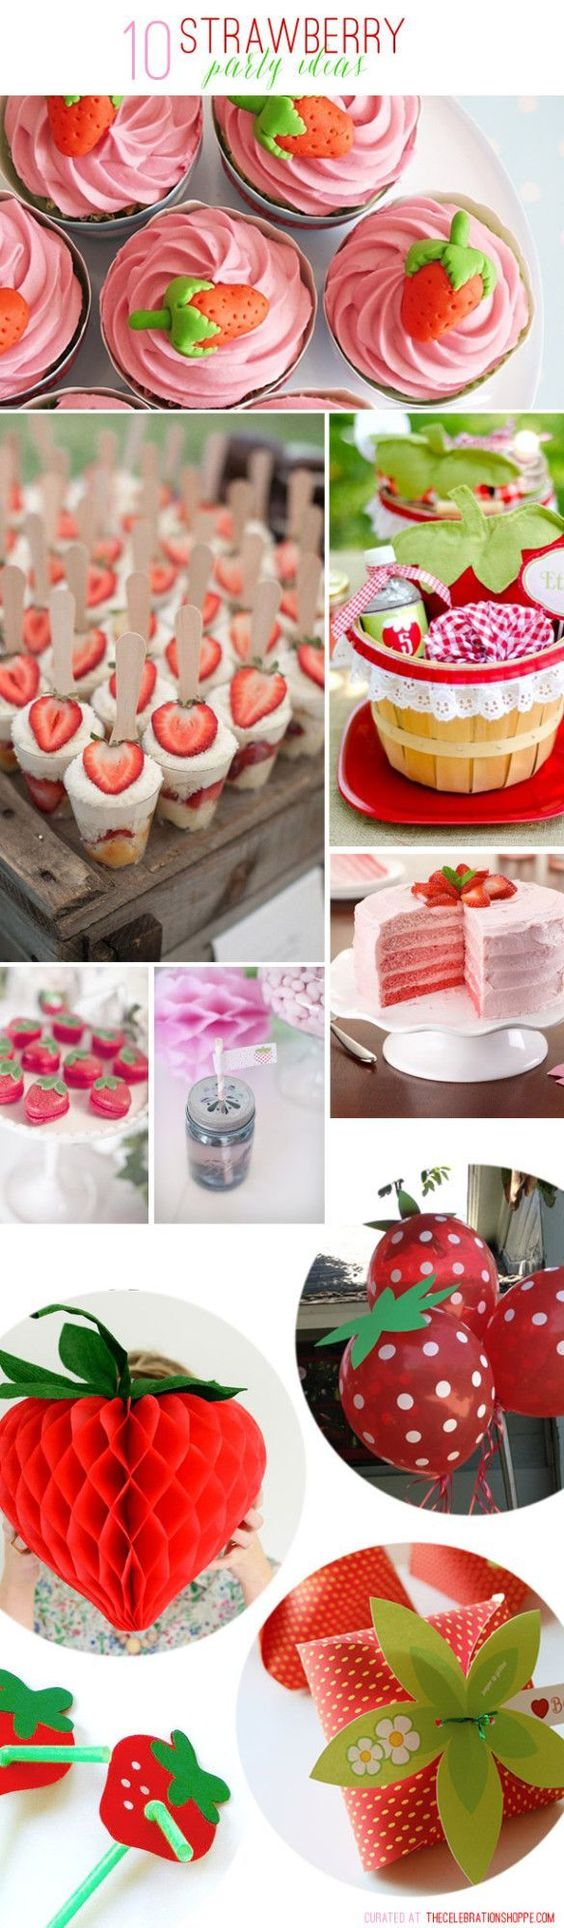 10 Strawberry Party Ideas and Recipes | Curated at TheCelebrationShoppe.com